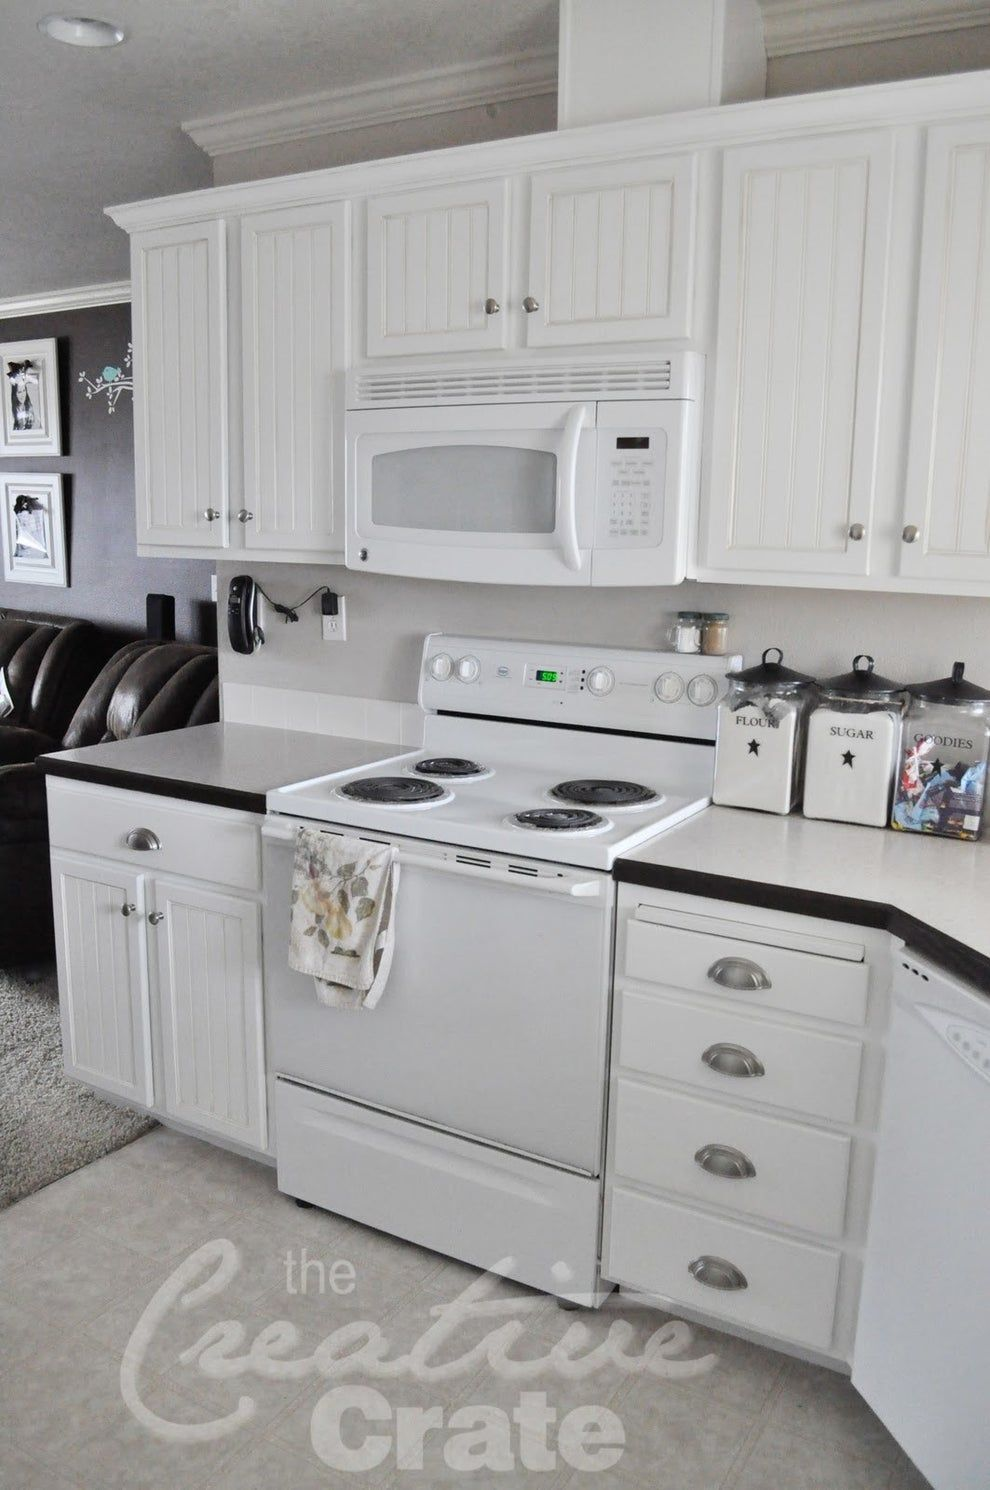 Install Beadboard Or Beadboard Wallpaper To Upgrade The Kitchen Cabinets You Already Have 31 Diy In 2020 Beadboard Kitchen Remodeling Hacks Beadboard Kitchen Cabinets